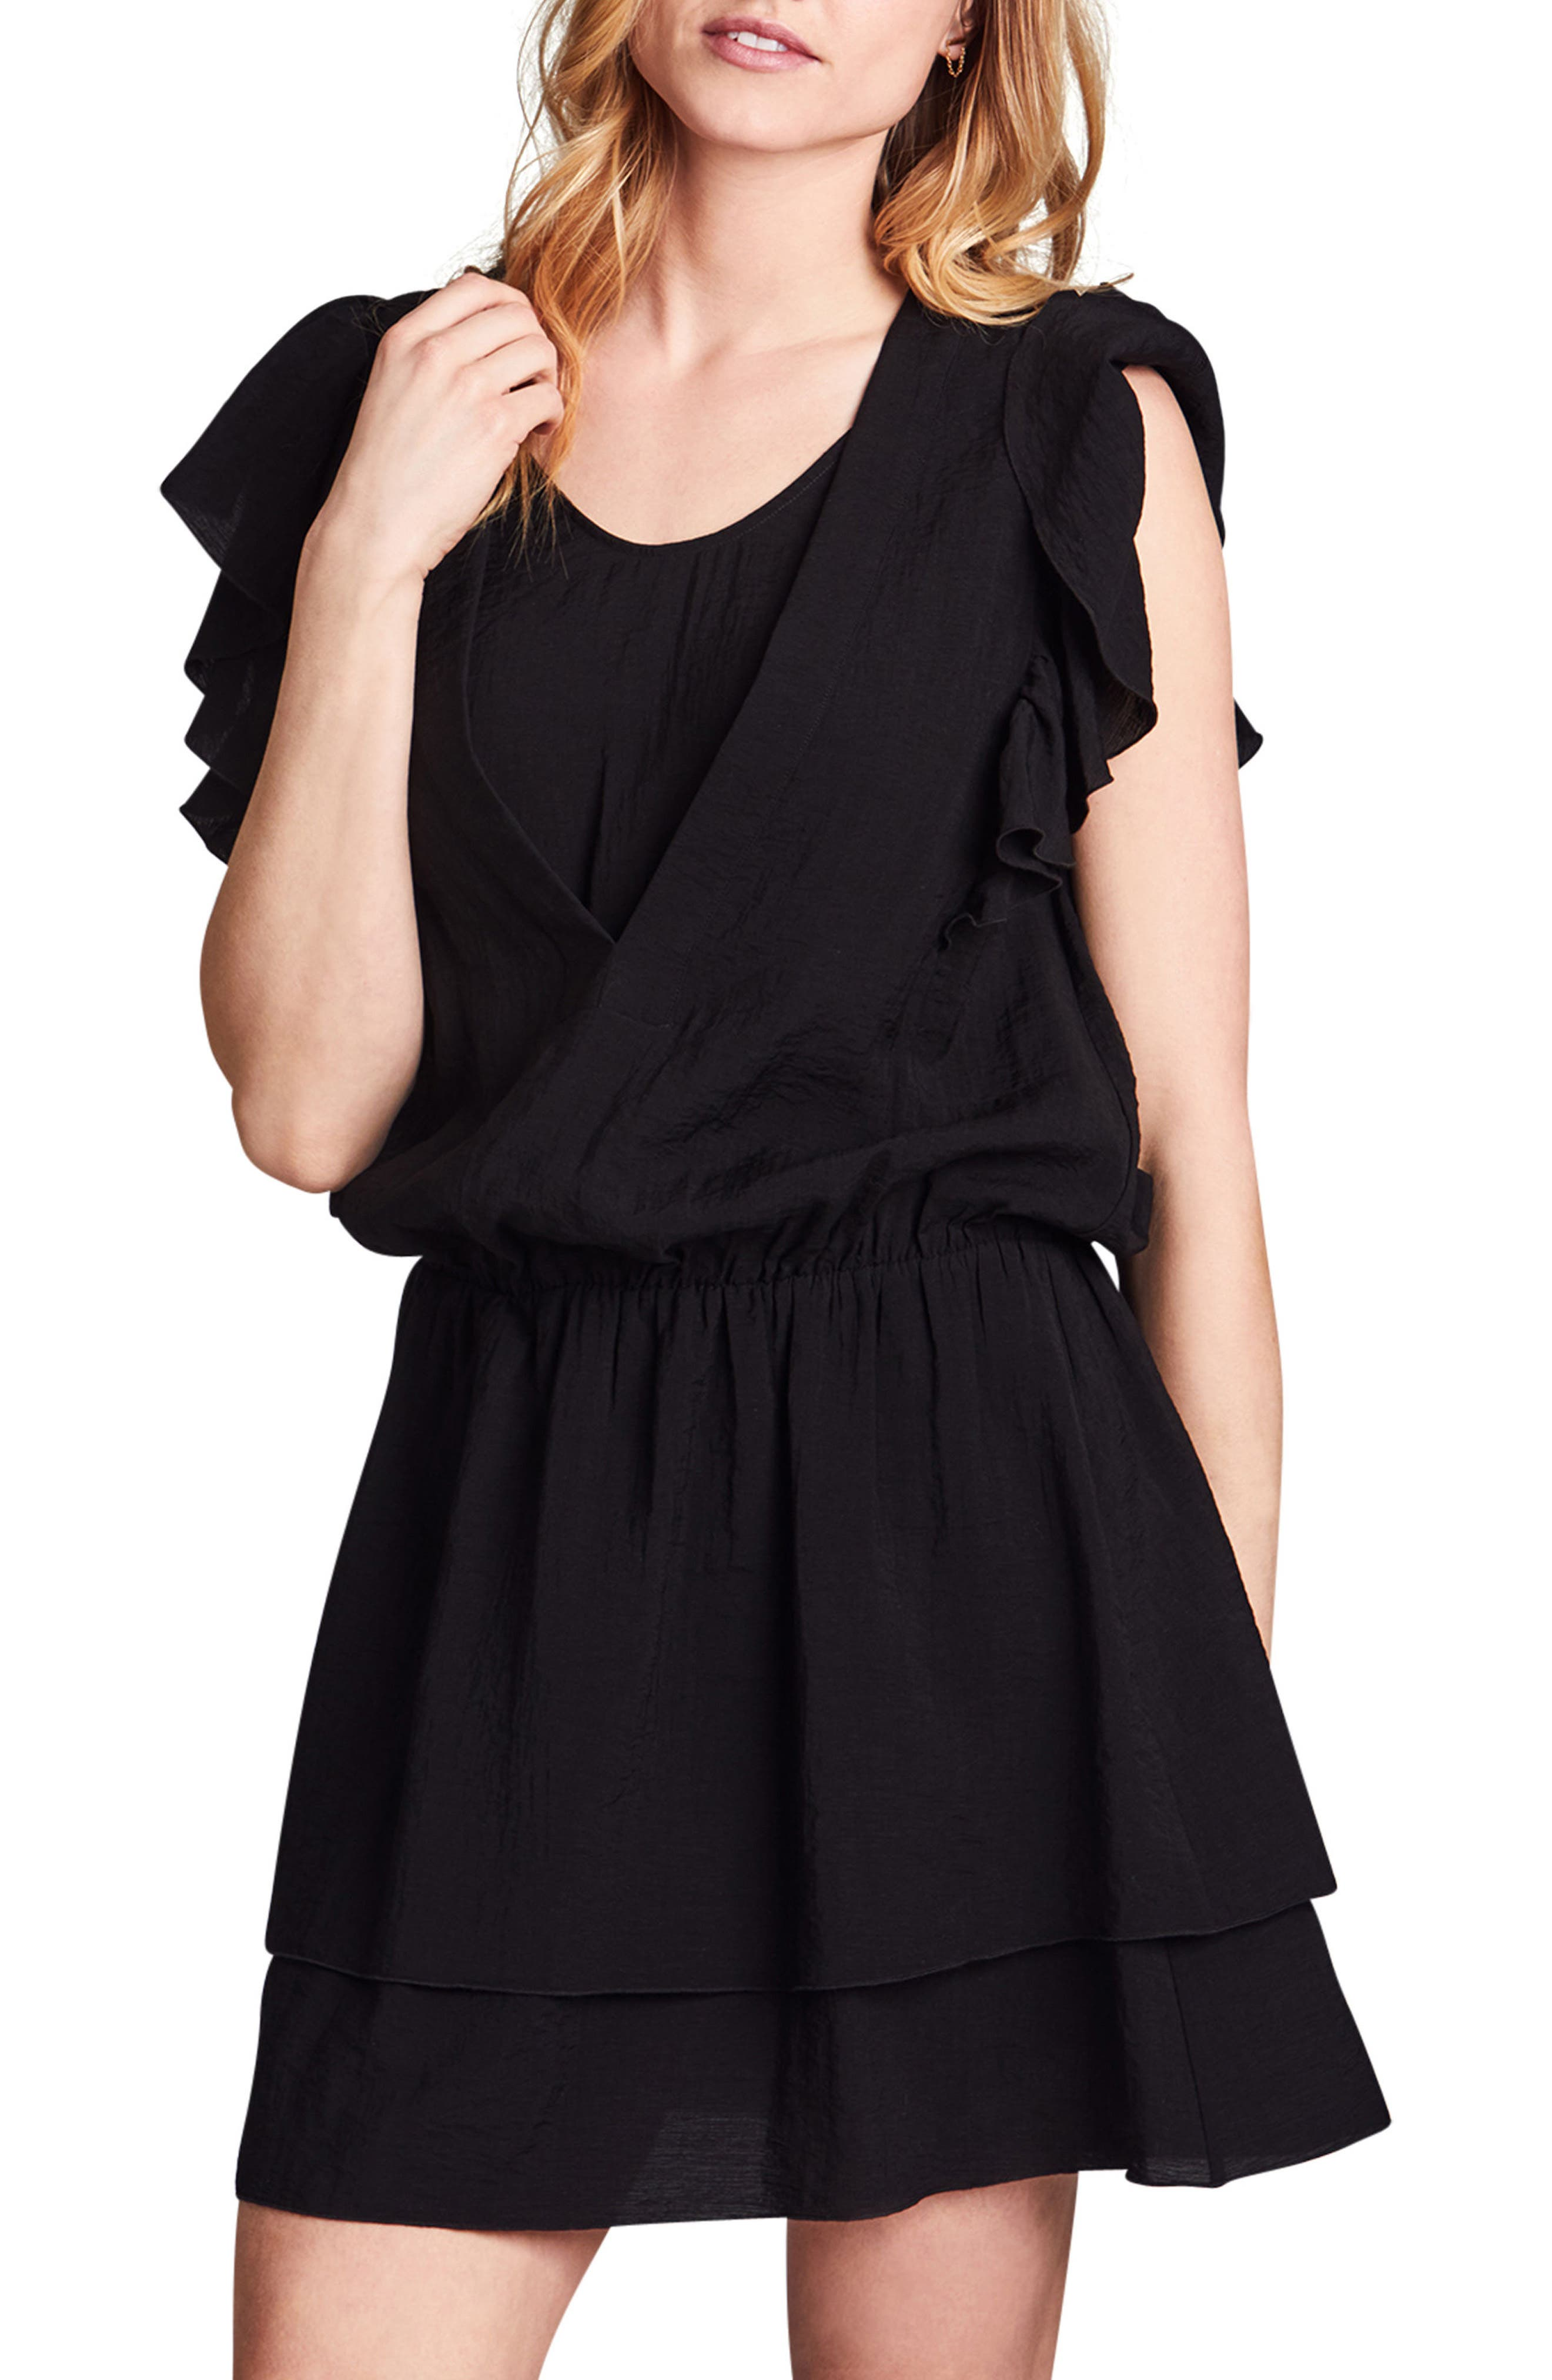 Naomi Nursing Dress,                         Main,                         color, BLACK